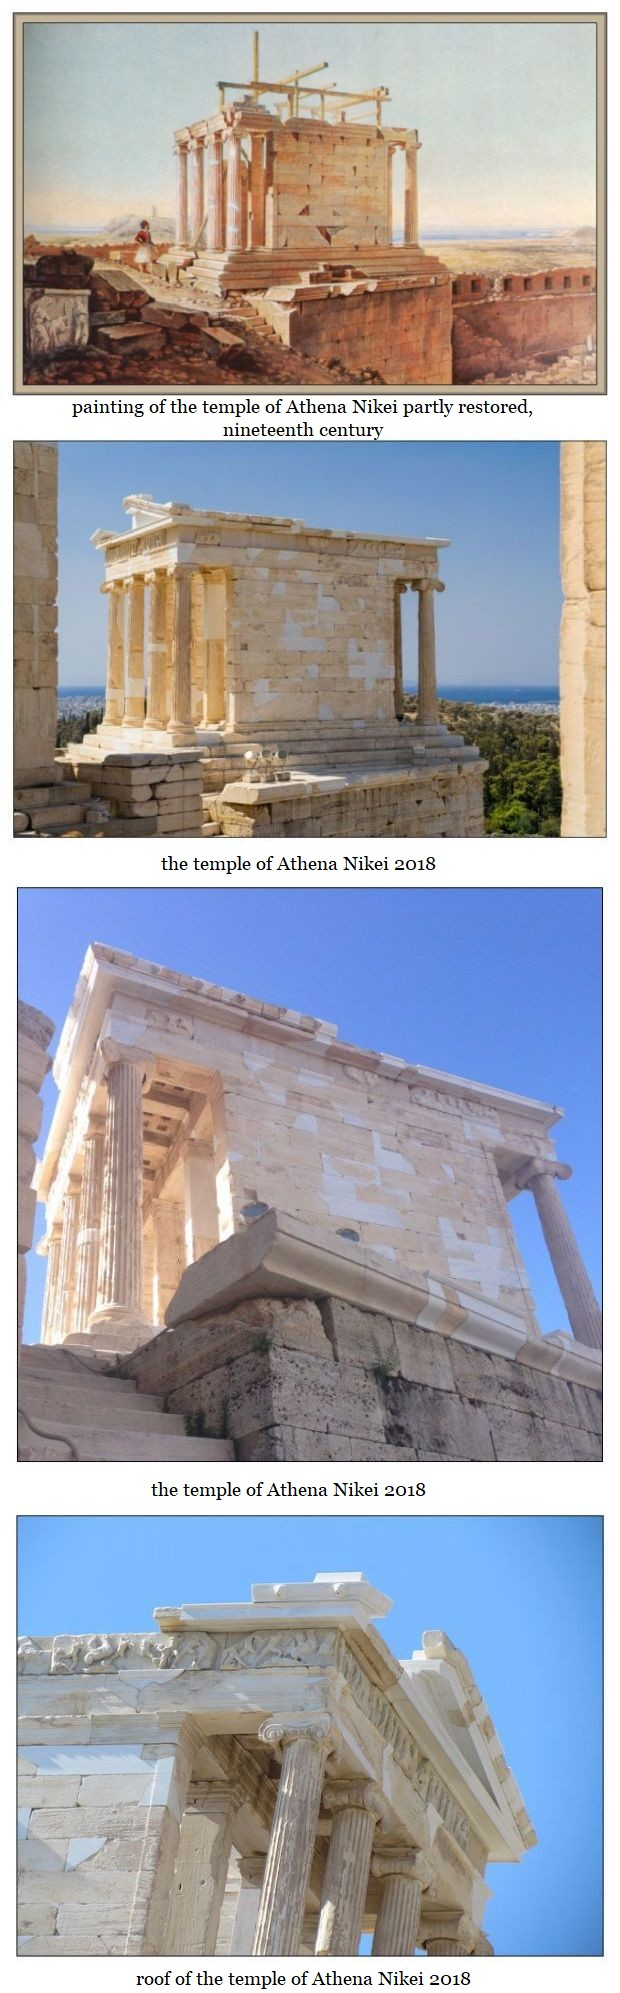 temple of Athena Nikei past and present